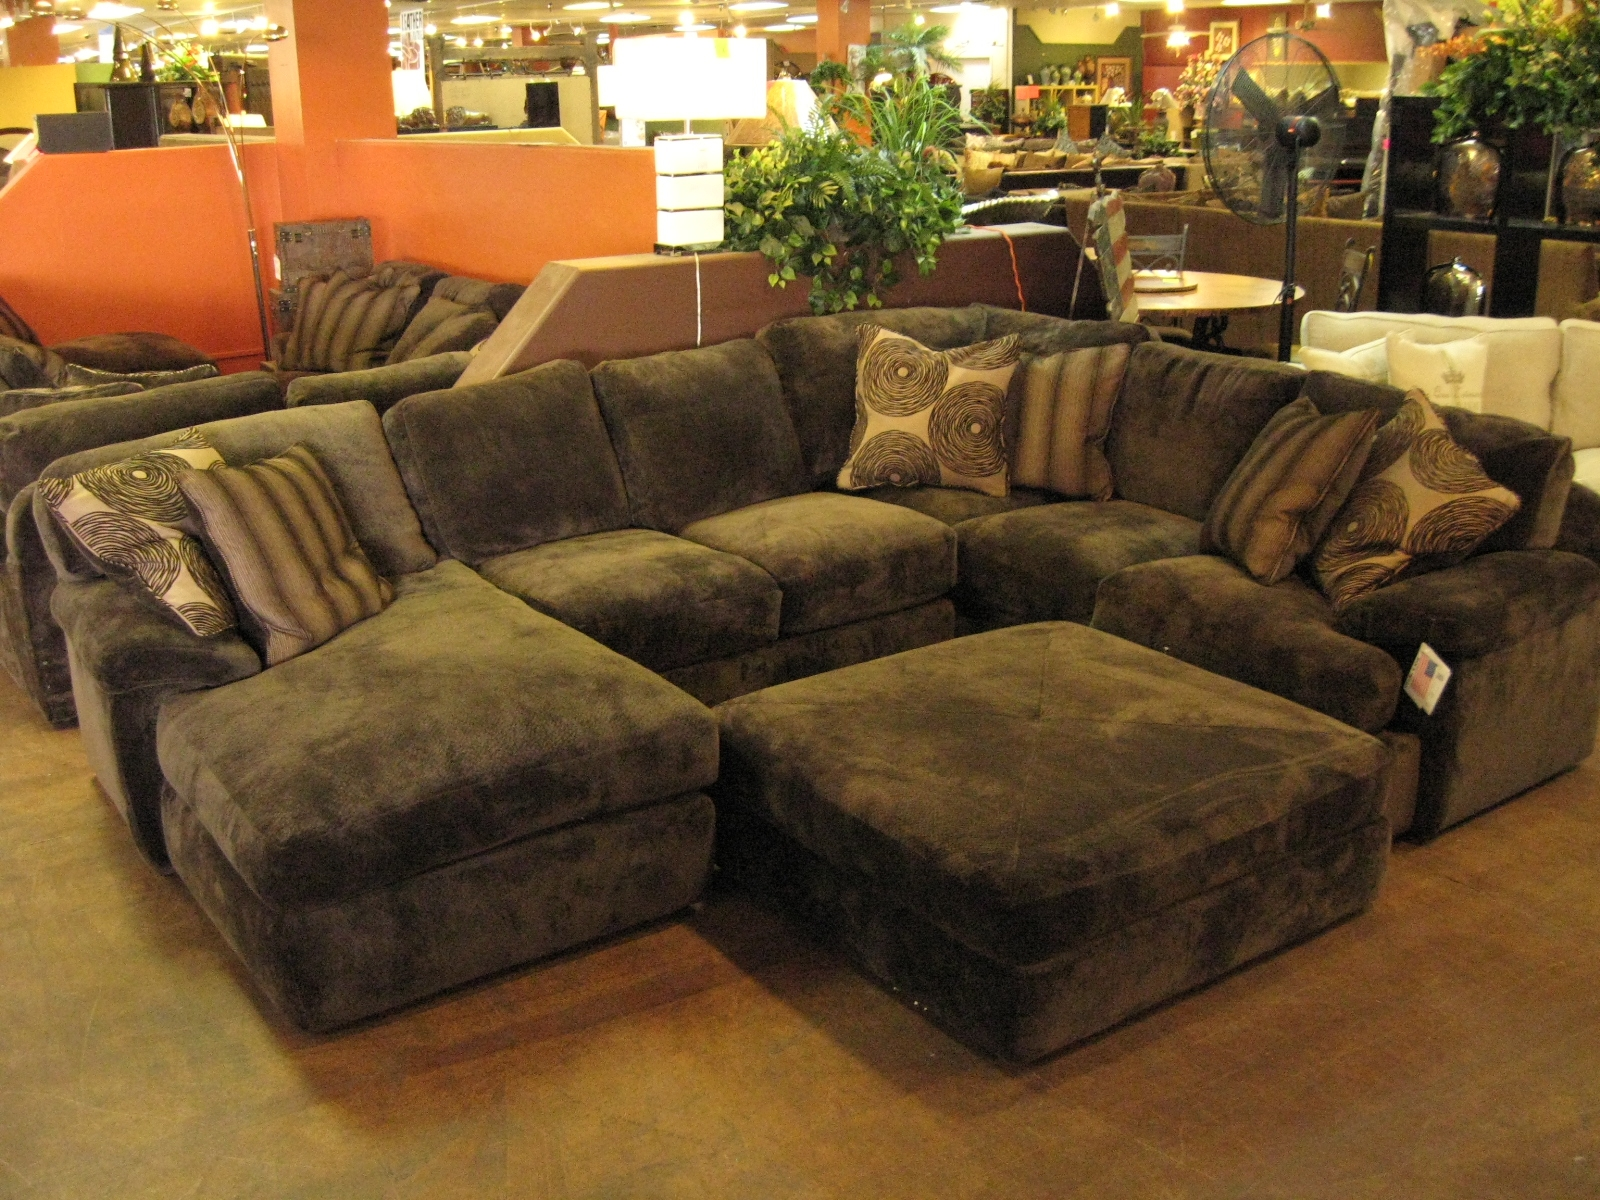 European Style Sectional Sofas Sofa Menzilperde Pertaining To European Style Sectional Sofas (#5 of 12)